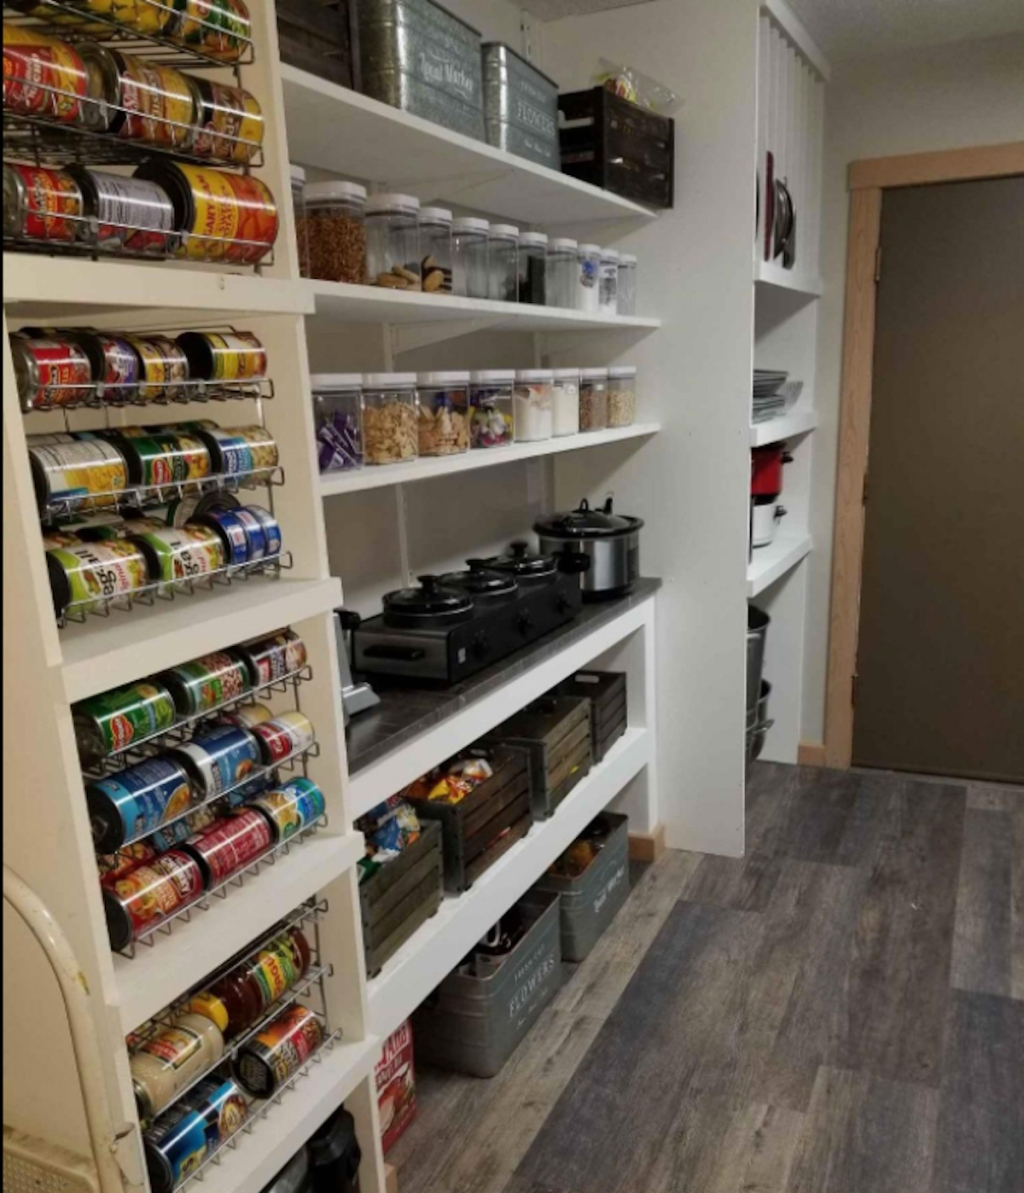 white pantry shelves with various cooking appliances and stacks of can on shelves